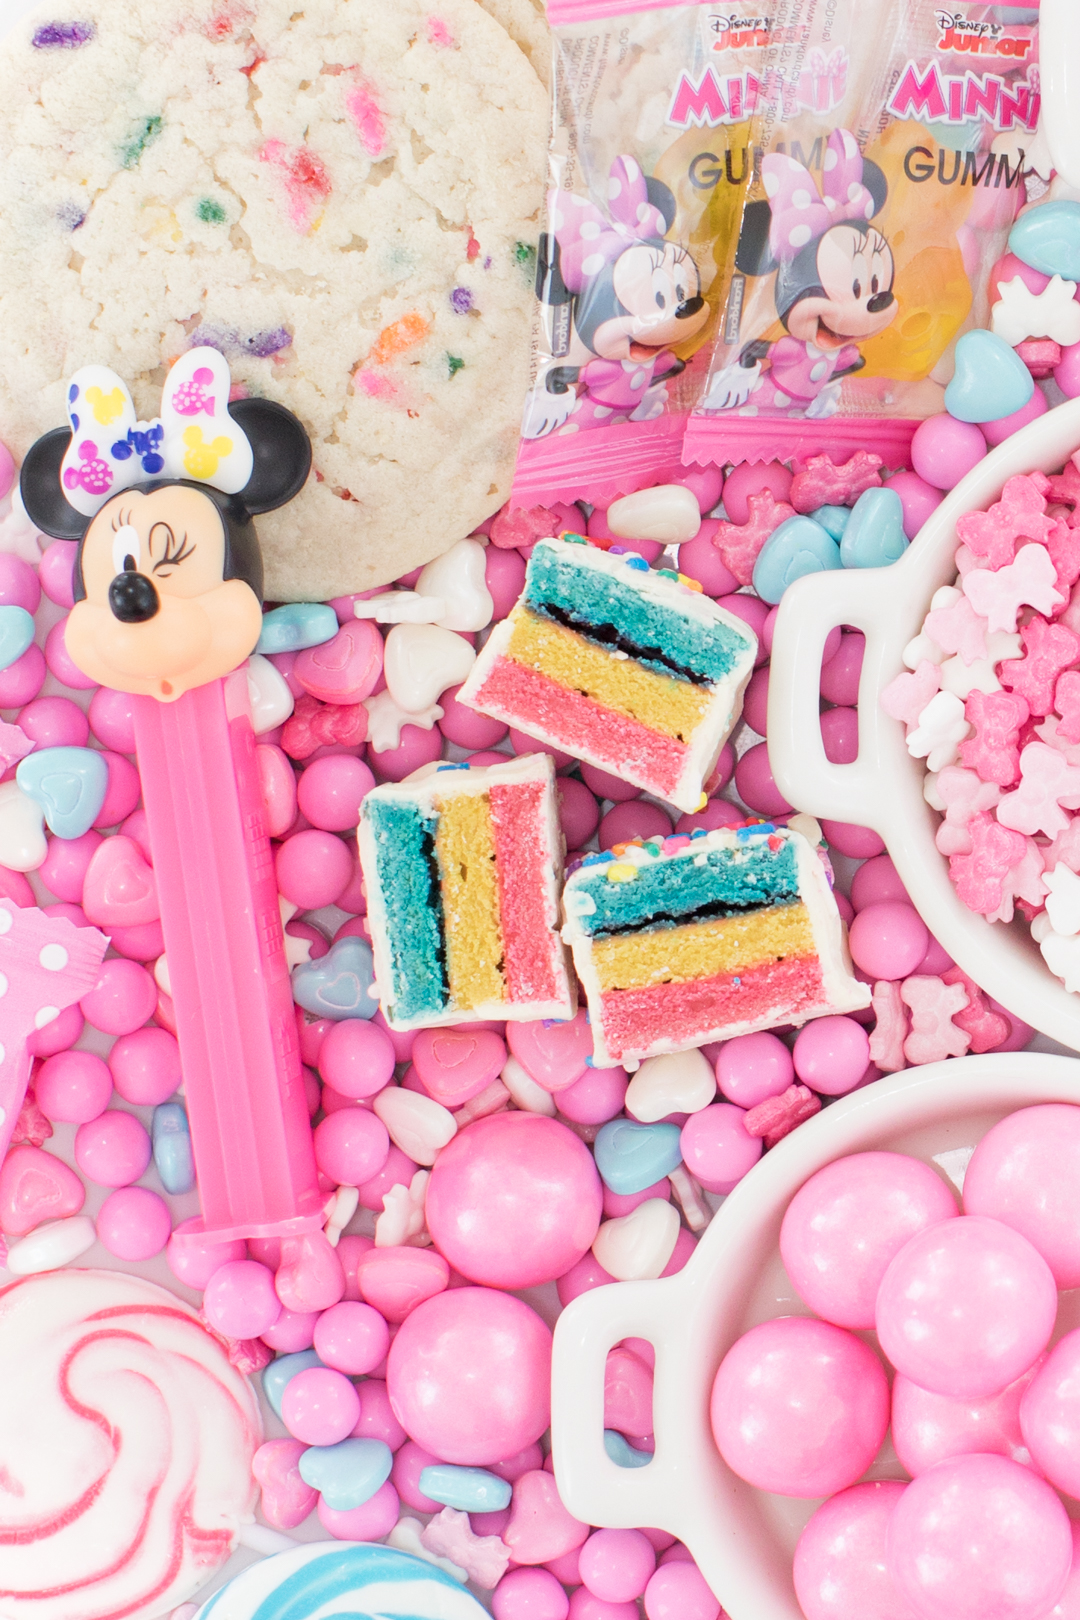 candy tray up close with minnie mouse pez dispenser and cakebites party cake